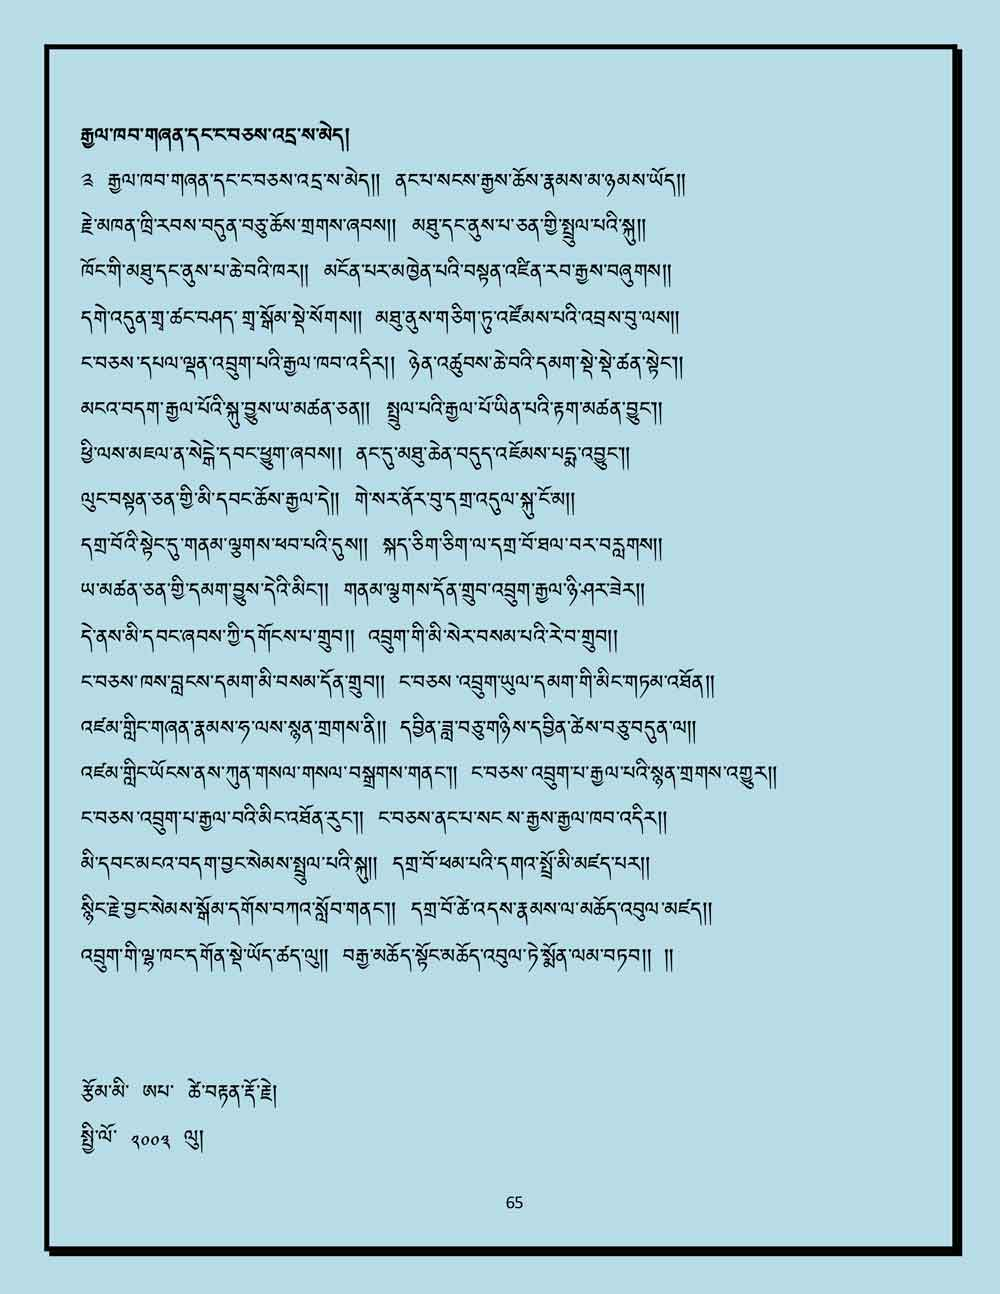 Ap-Tseten-Lyrics-65.jpg